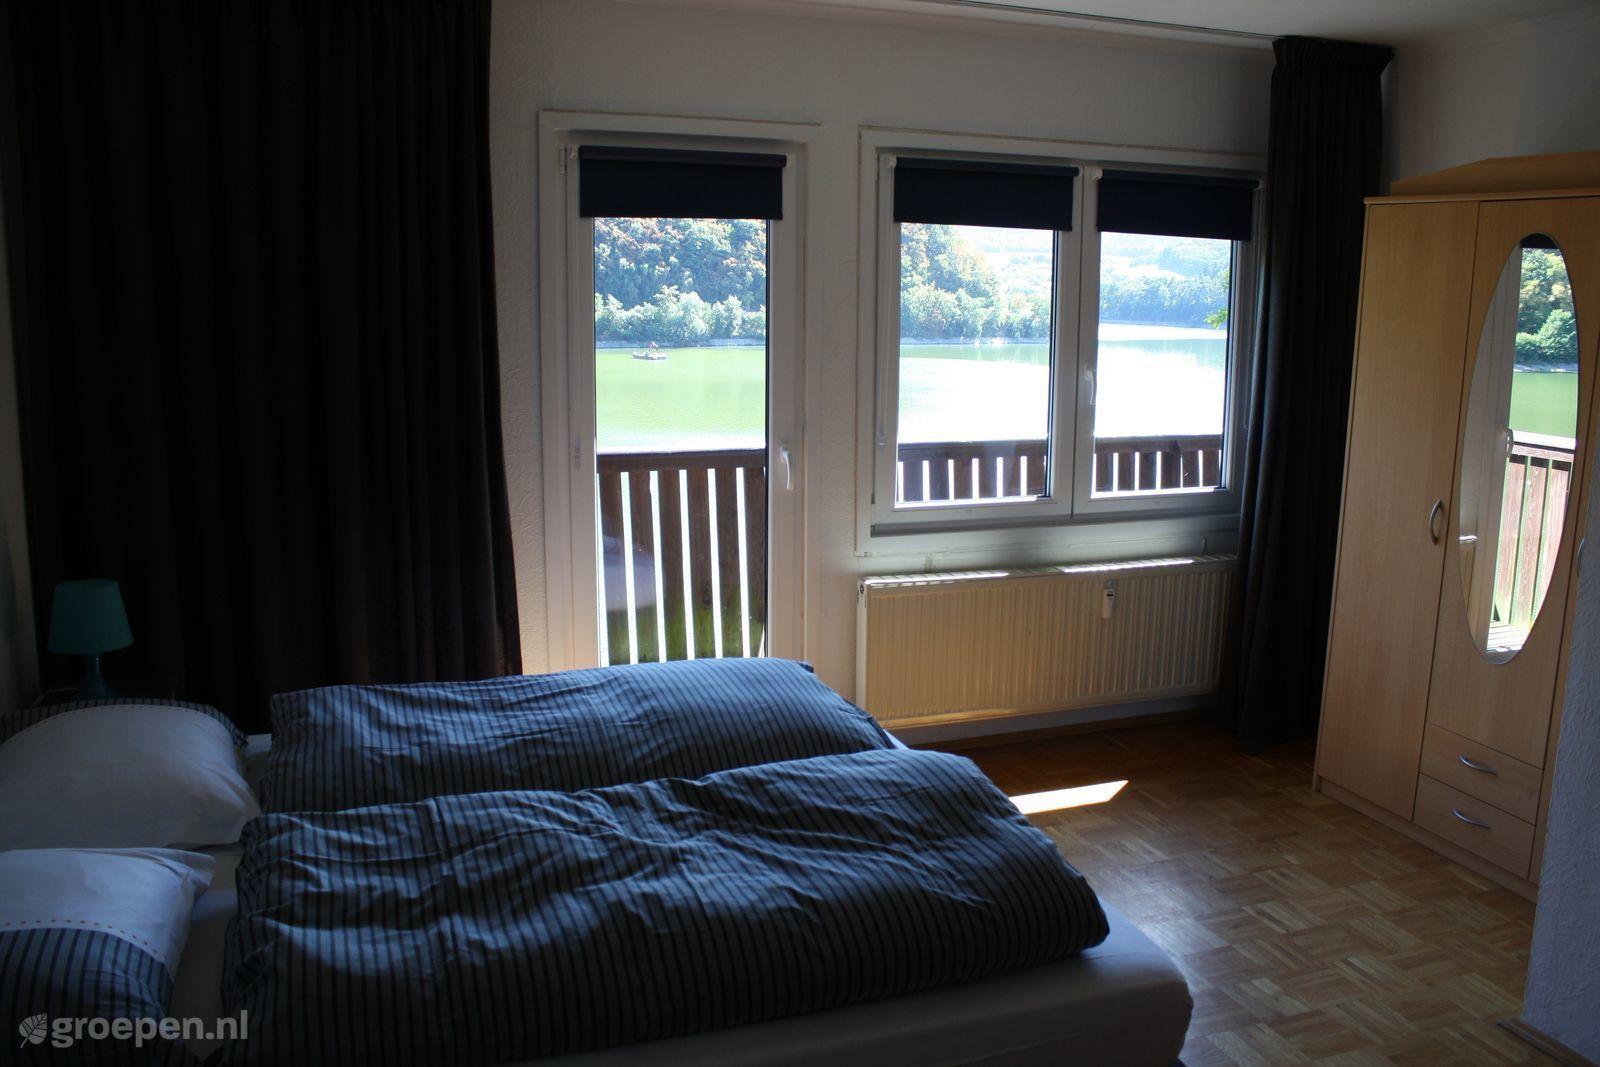 Group accommodation Marsberg am Diemelsee